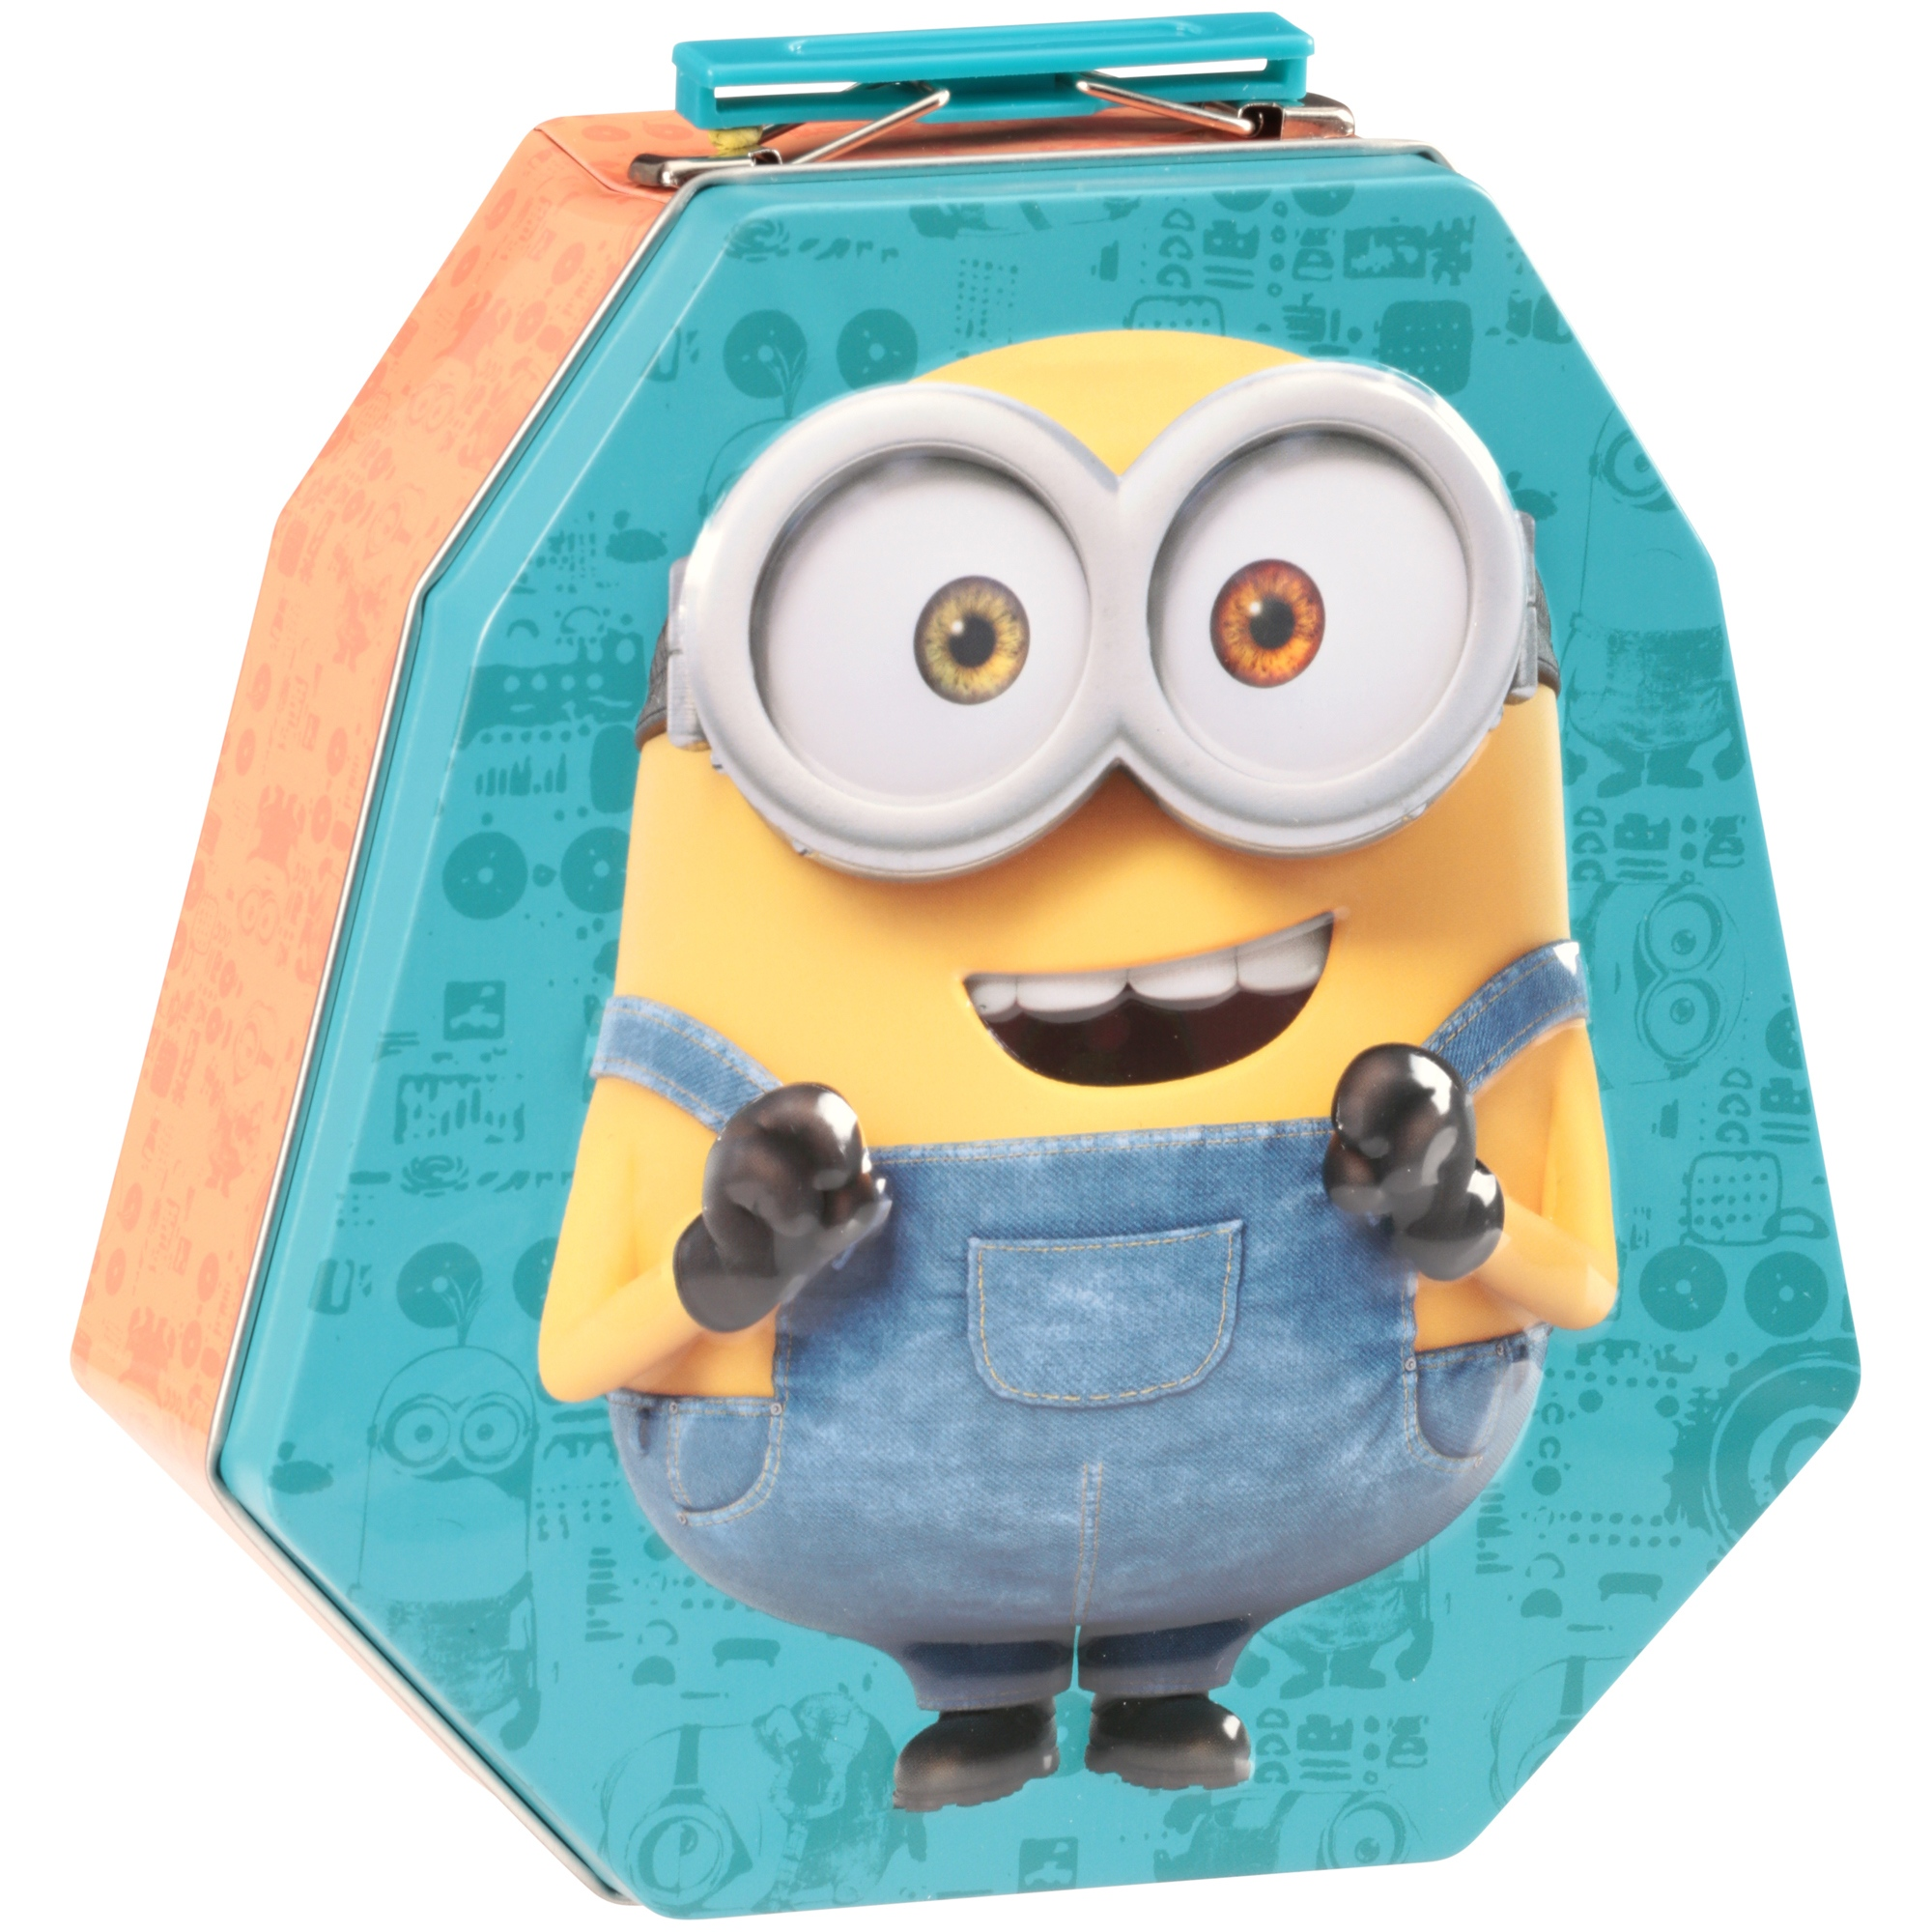 Minions Chalkboard Activity Case by Minions